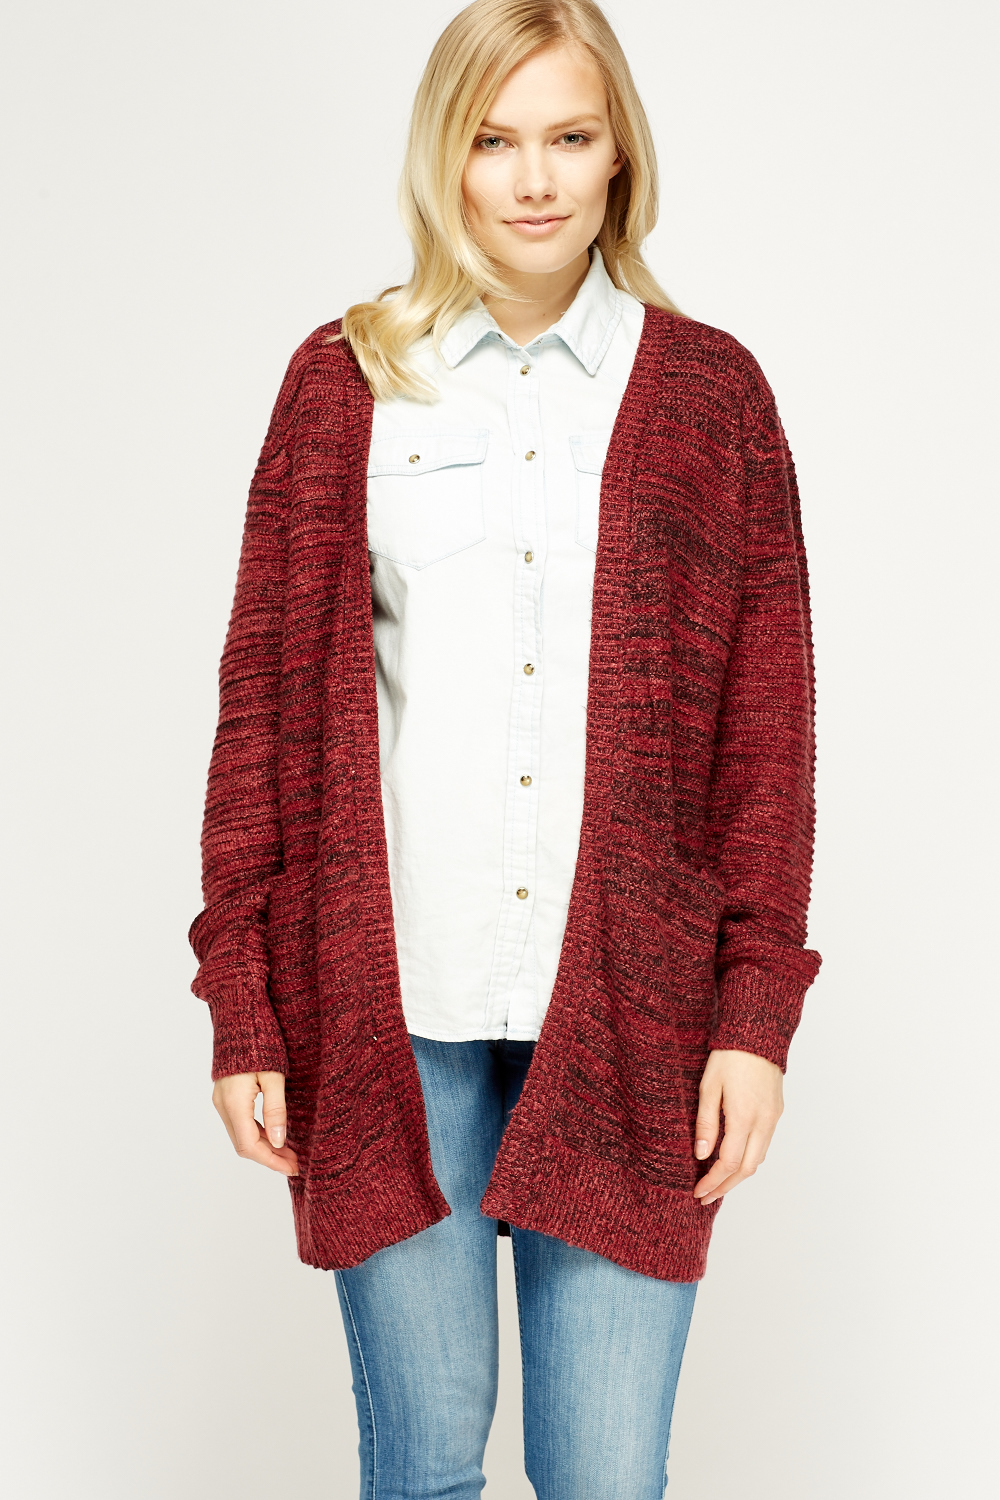 Speckled Open Front Knit Cardigan - Maroon - Just ?5